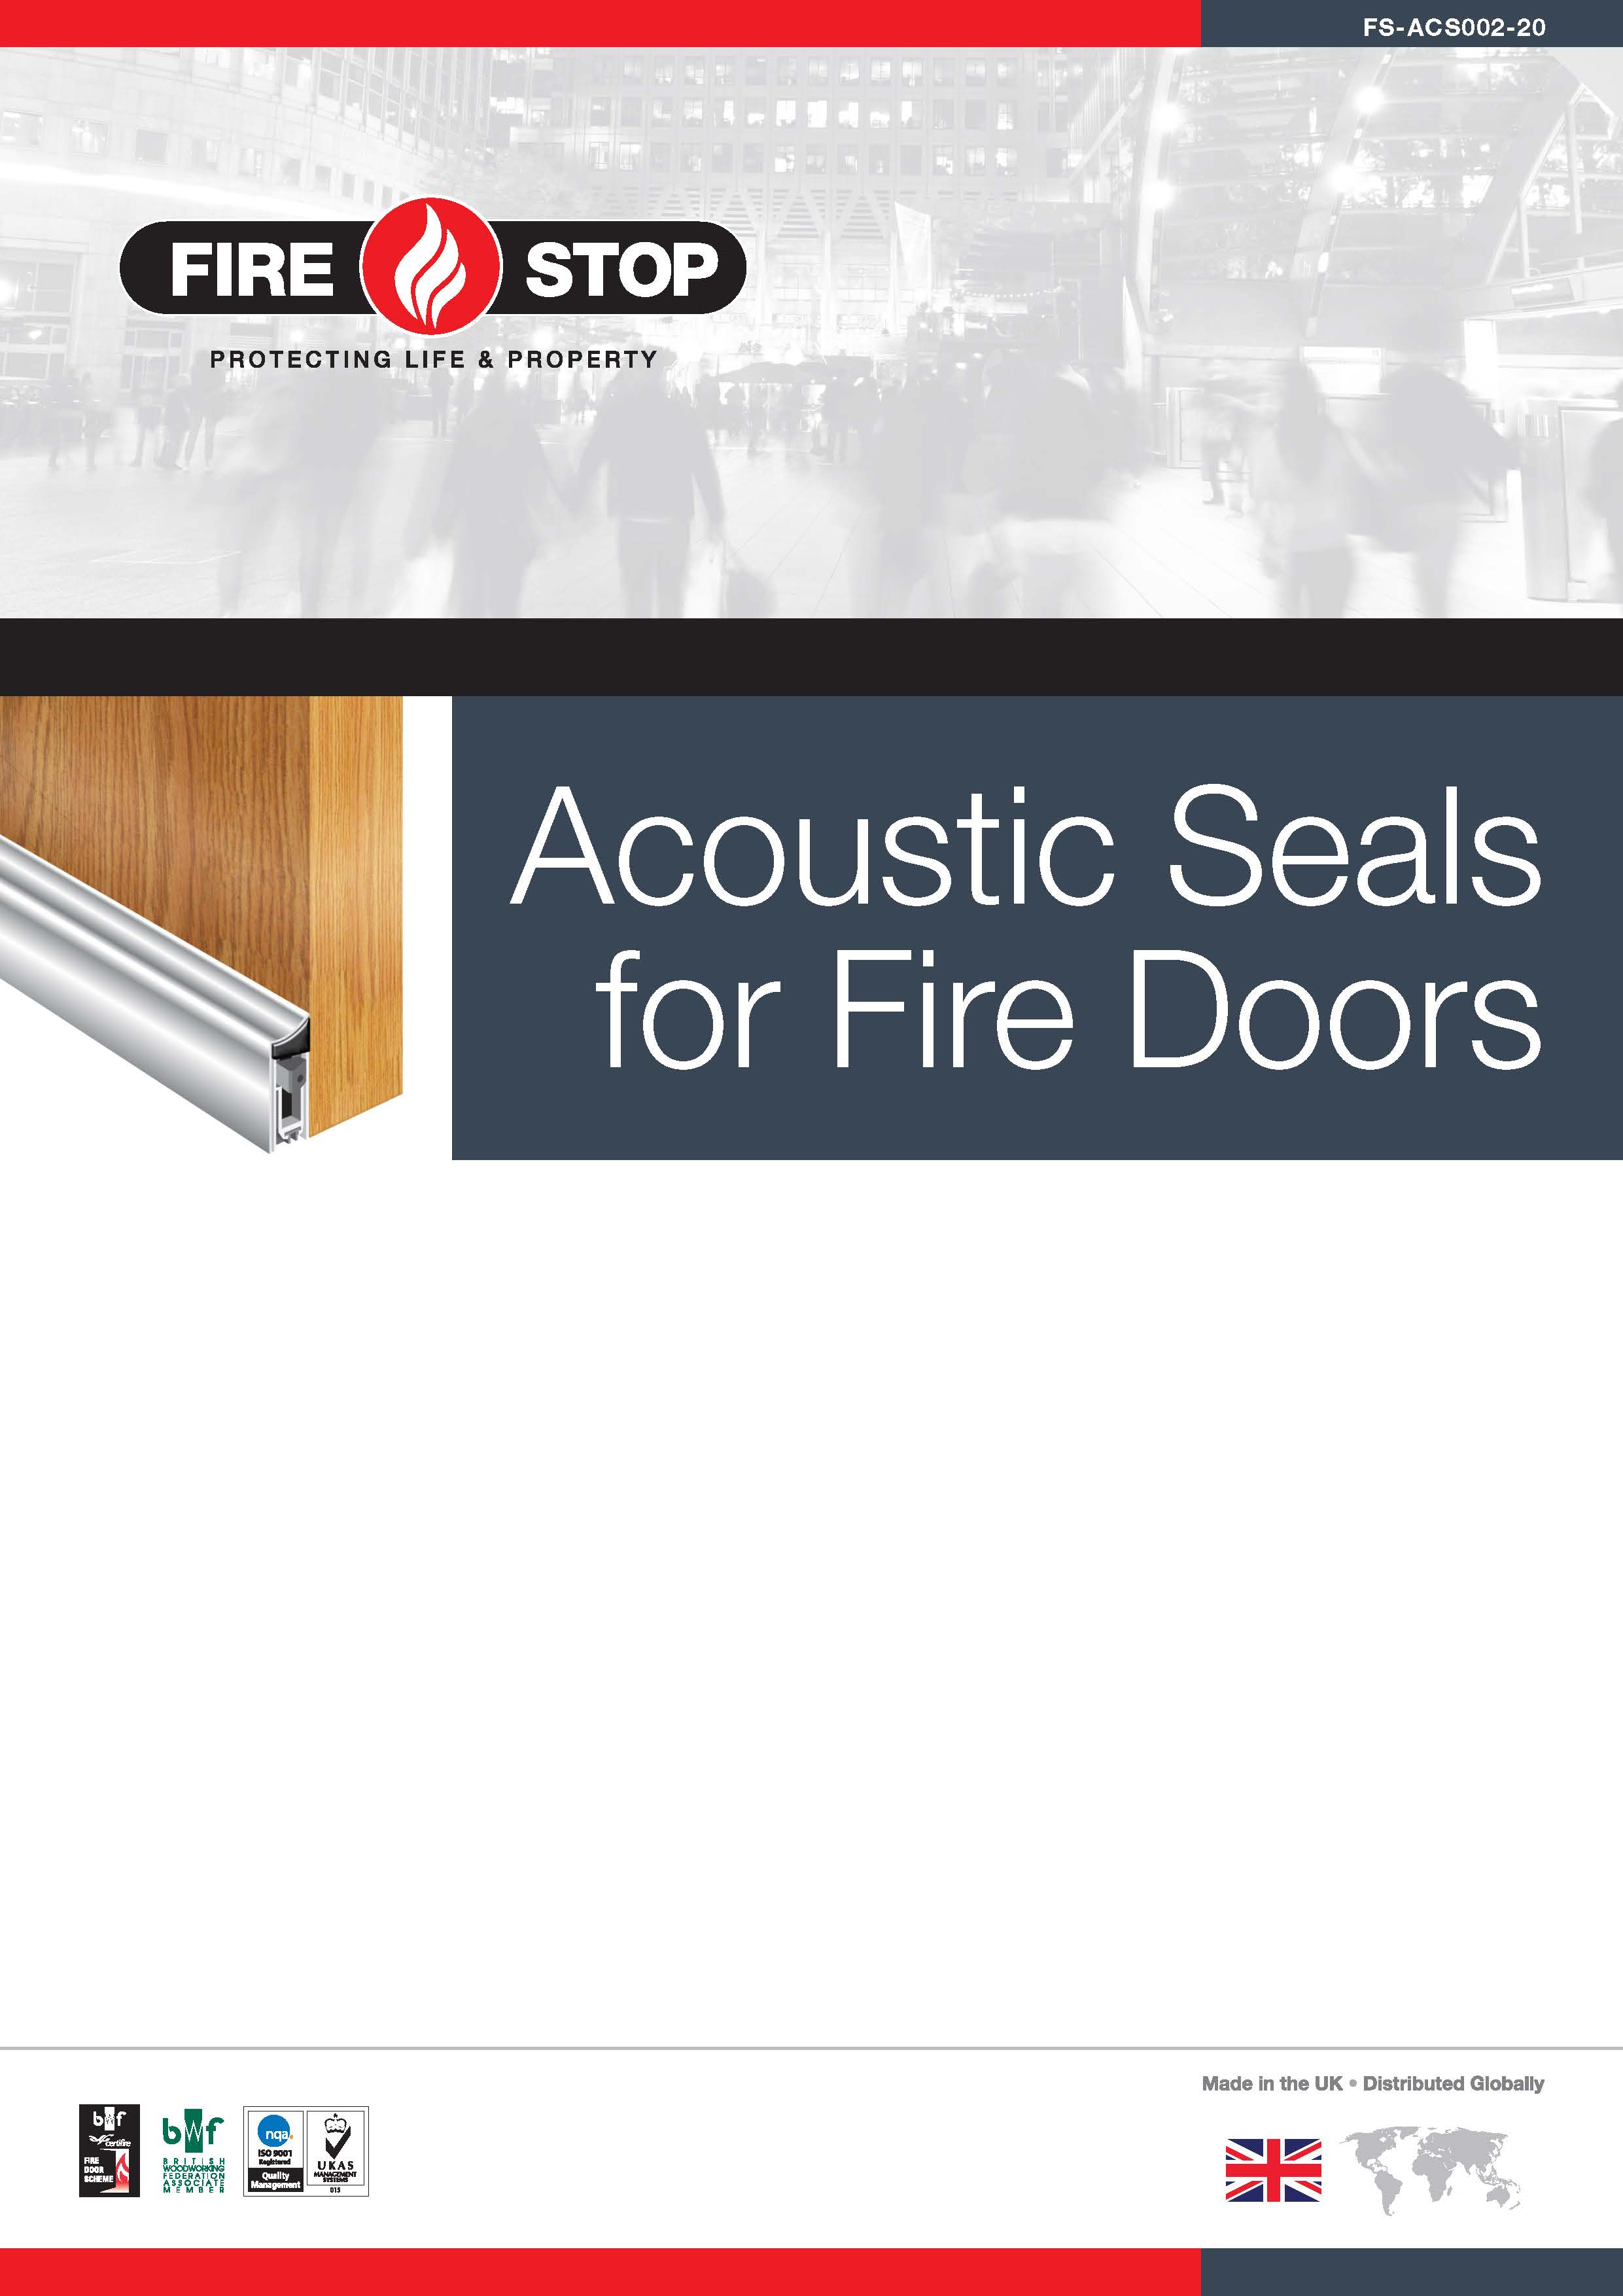 Intumescent Fire Seals Rebated FIRE ONLY Passive Prevention Safety Product NEW